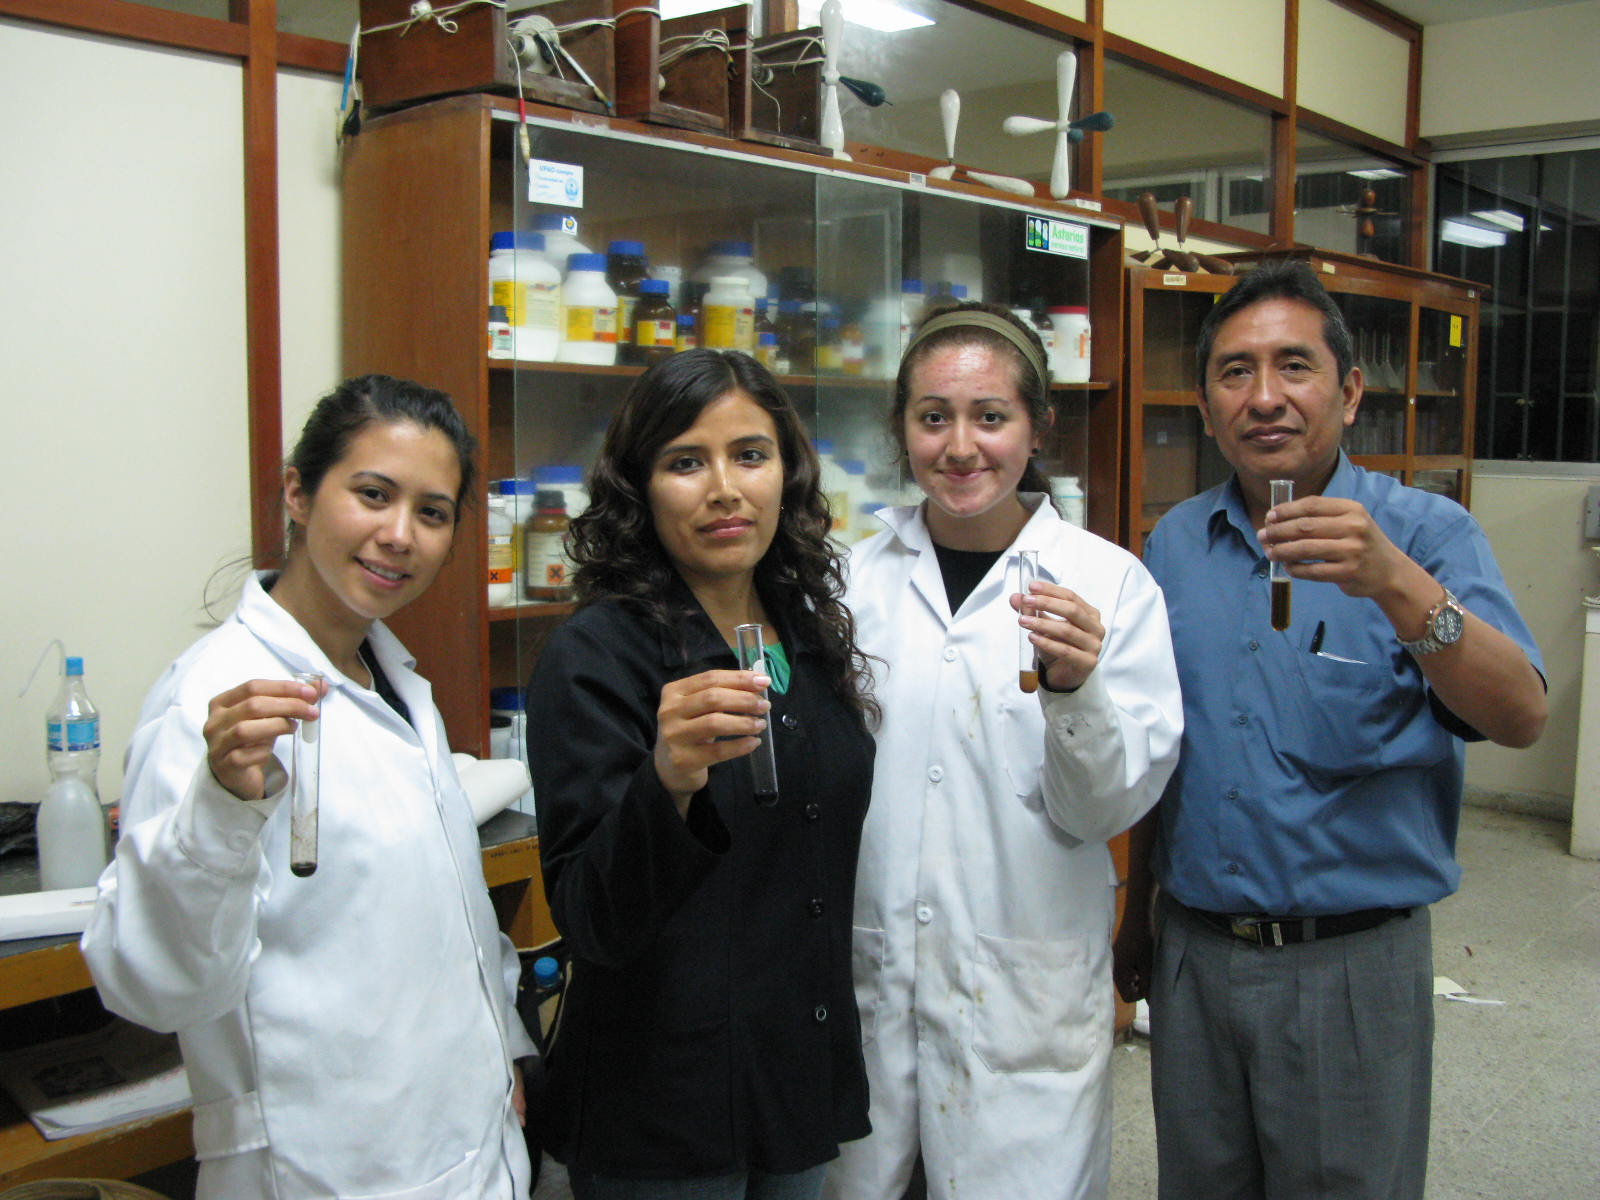 Summer2008 - MHIRTstudents working in the lab under the guidance of Dr. Fredy P é rez (right). Photo by John Effio.